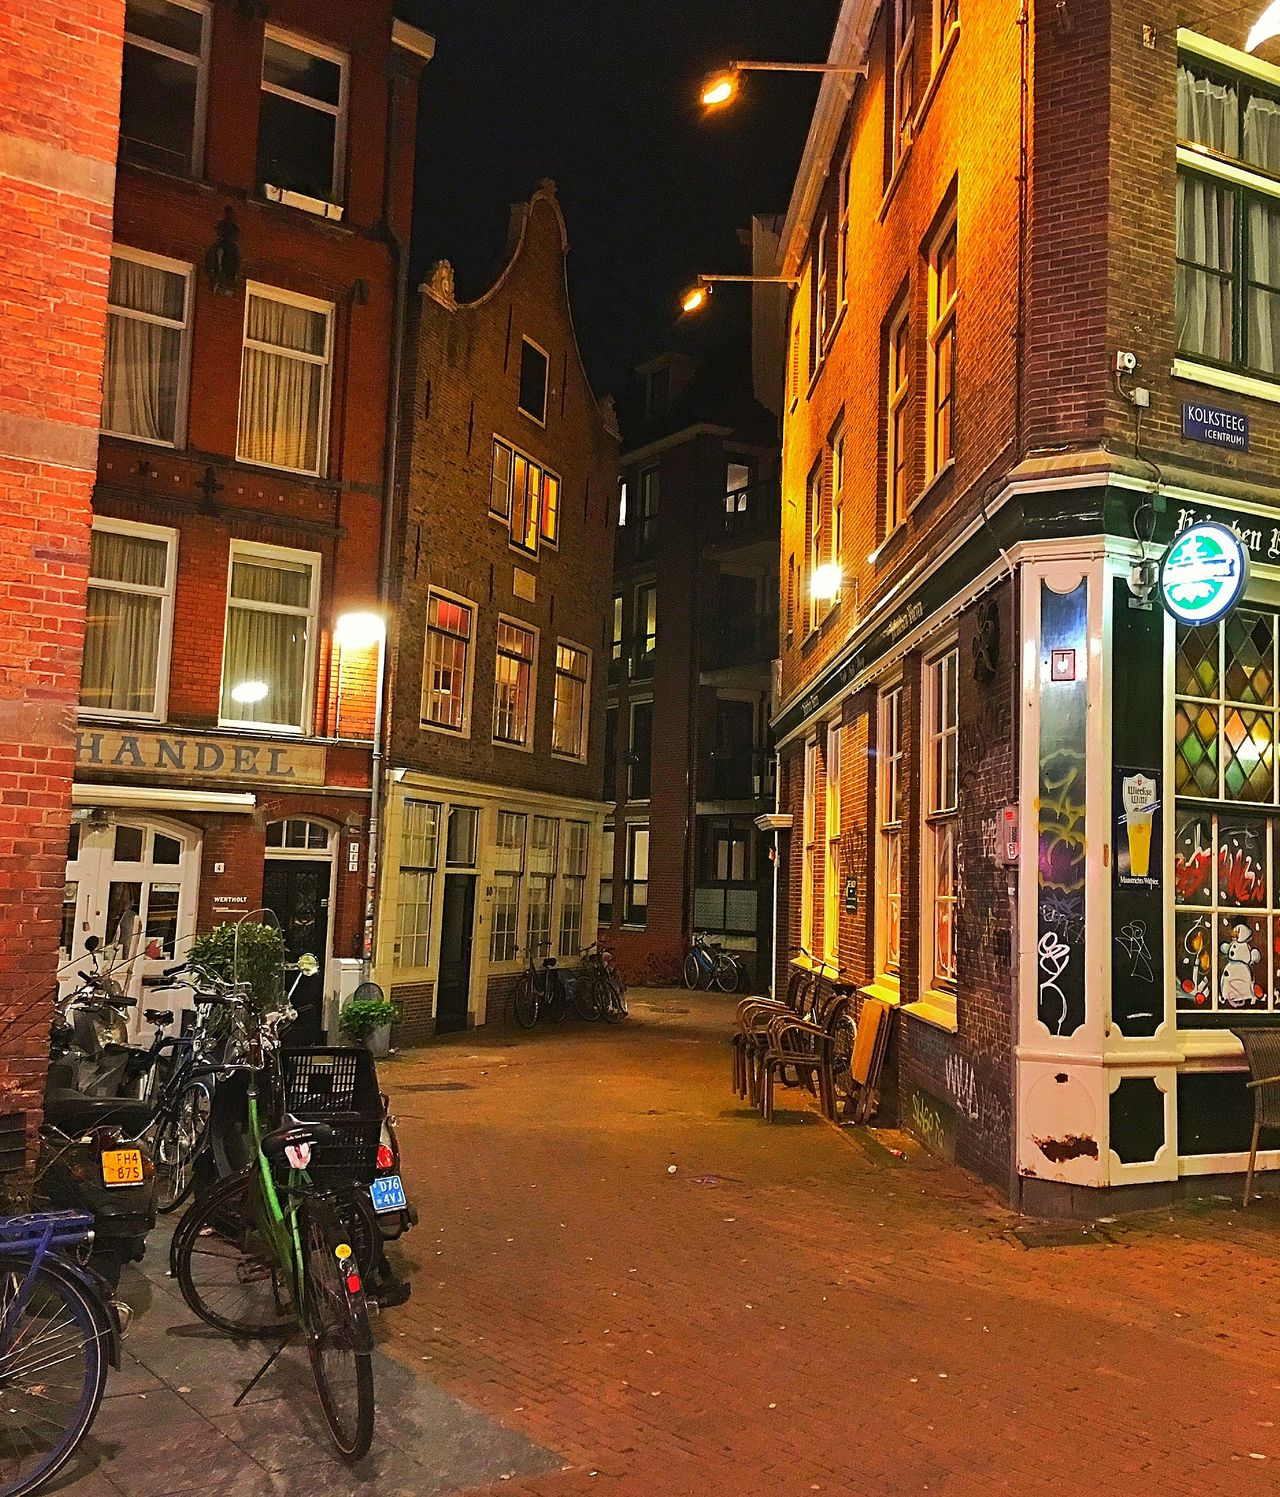 Amsterdam Amsterdamcity Architecture Beautiful Building Building Exterior City City City Street Citylife Holland Iamamsterdam Illuminated Netherlands Niederlande Night Oldtown Residential Building Street Street Light